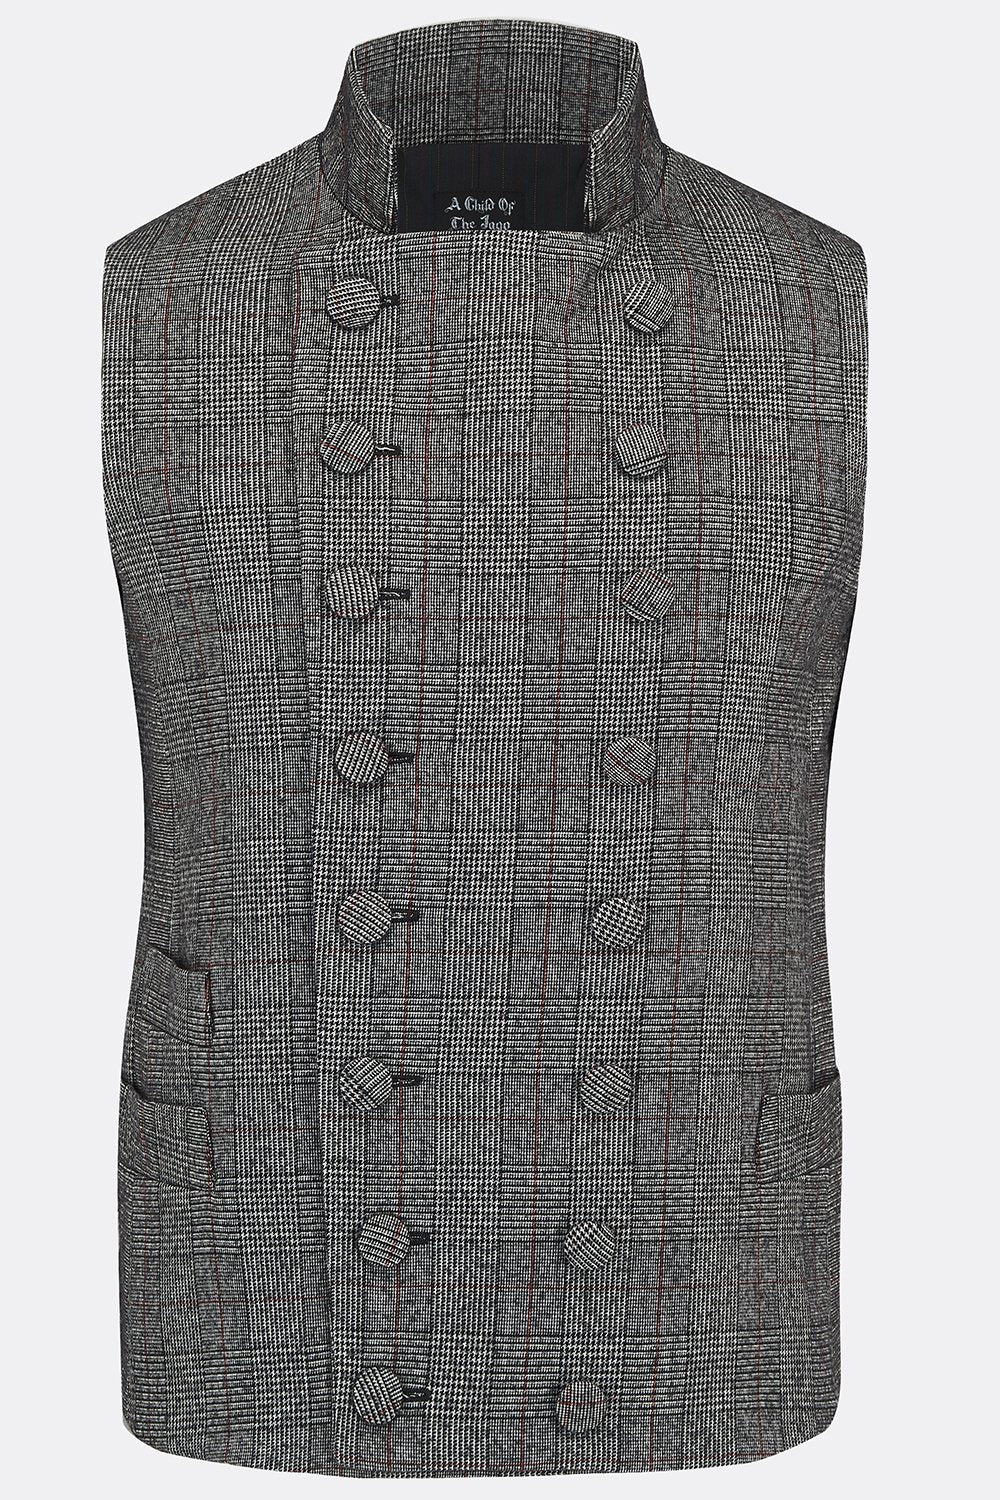 SHEPPARD WAISTCOAT IN GREY CHECK-menswear-A Child Of The Jago